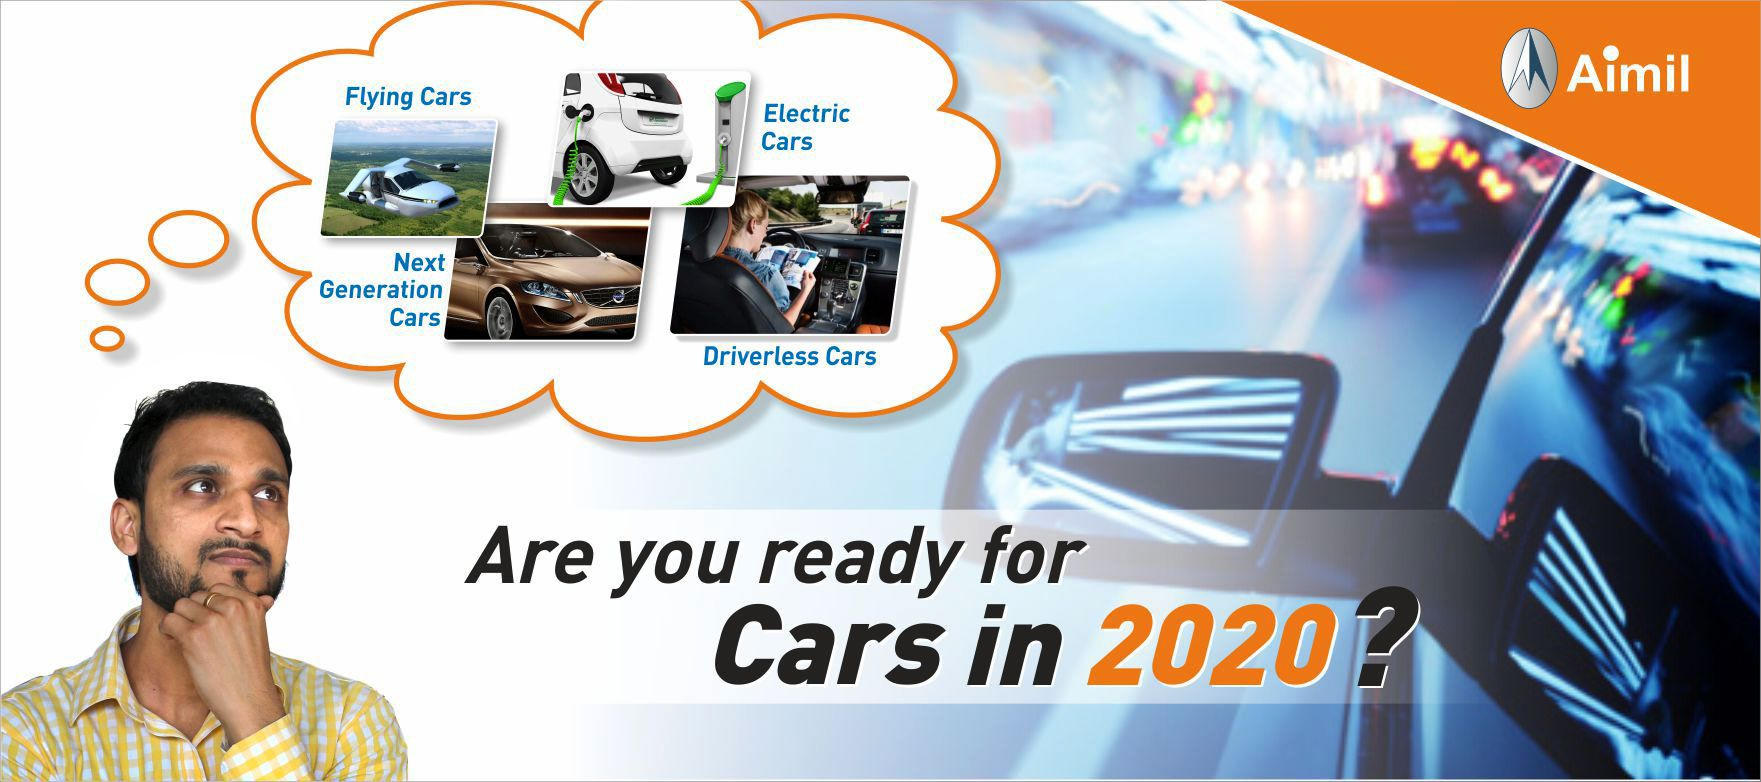 We At Aimil Cater To The Needs Of The Automotive